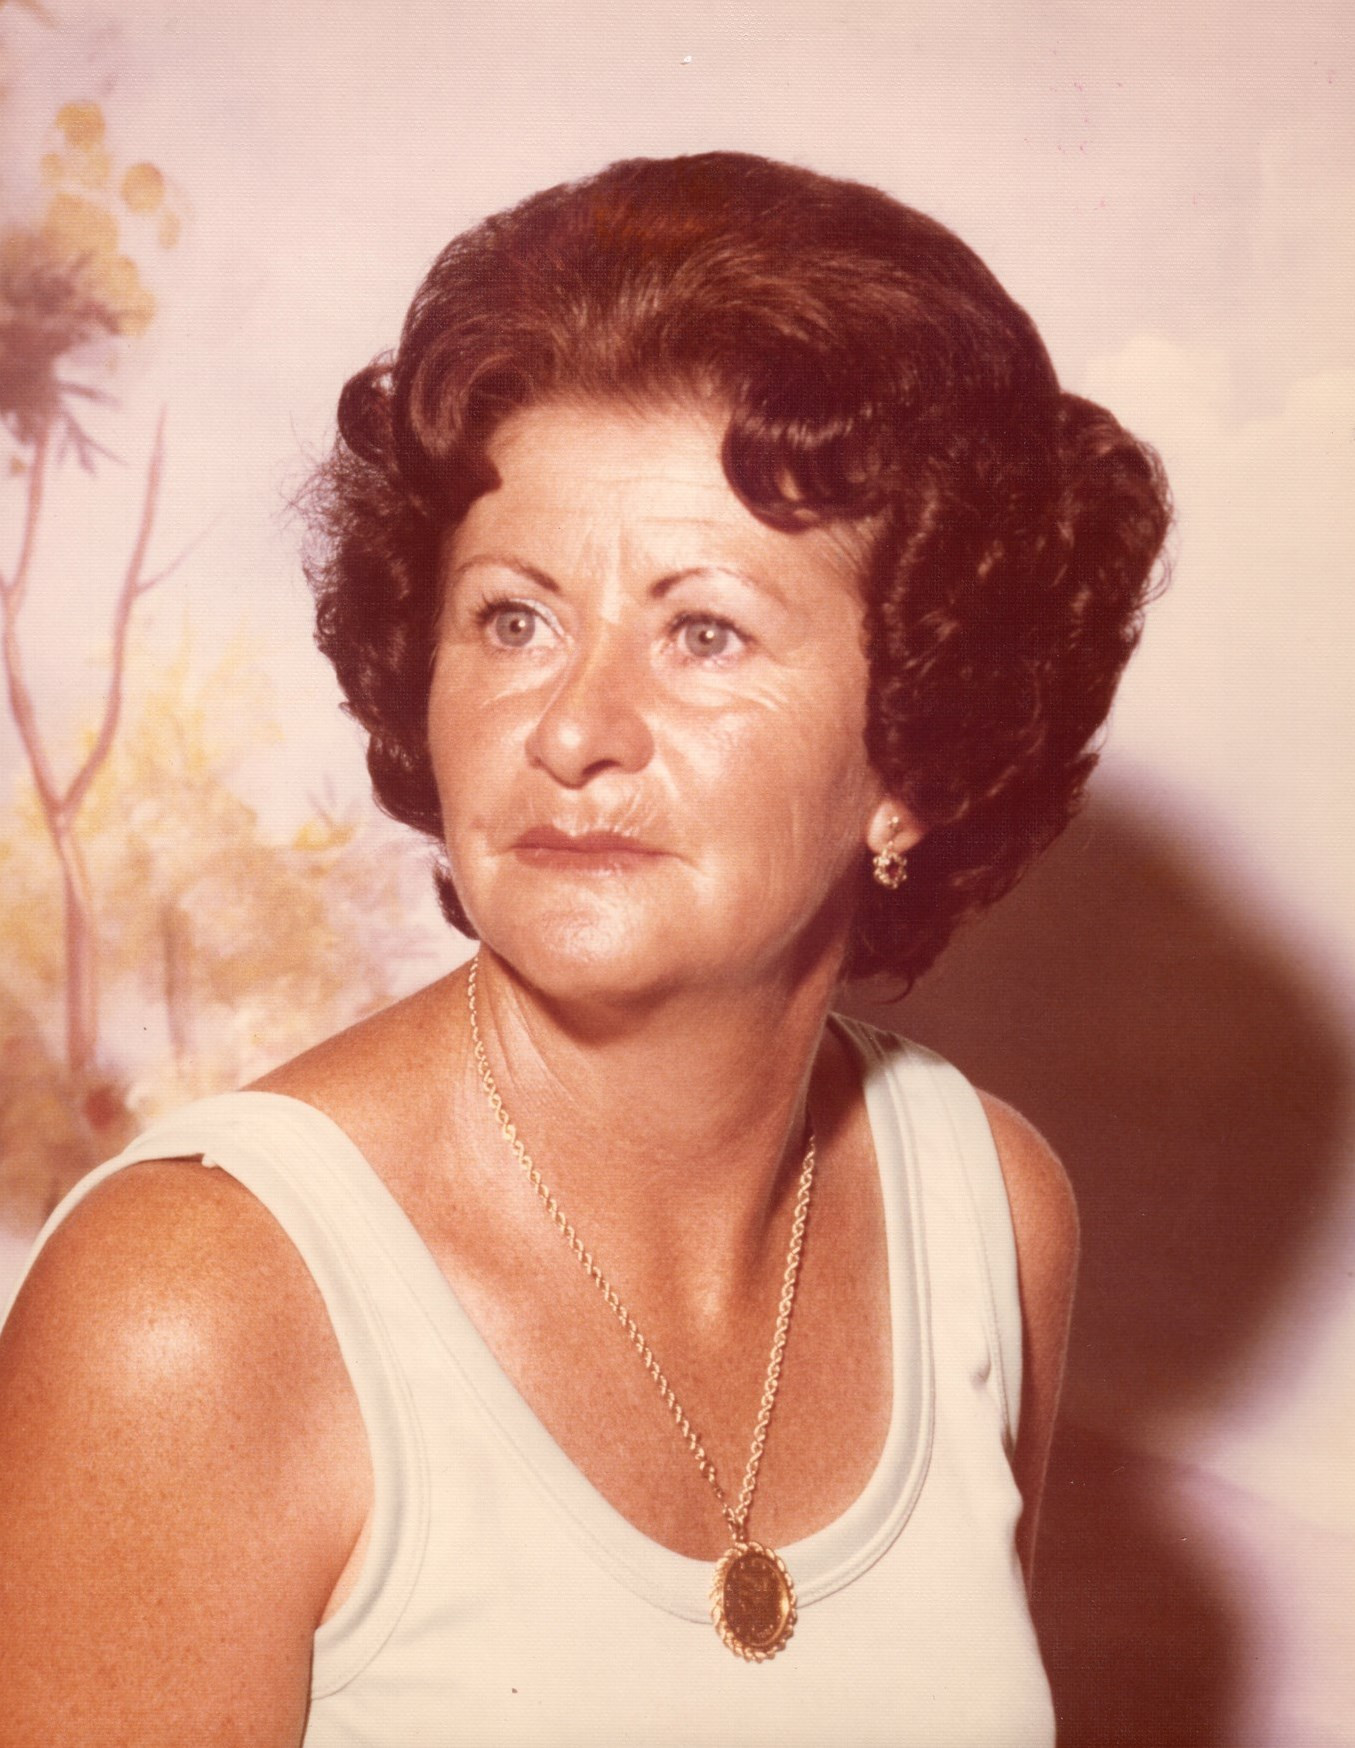 Rosemary Lee Cantrell Obituary - Hughson, CA